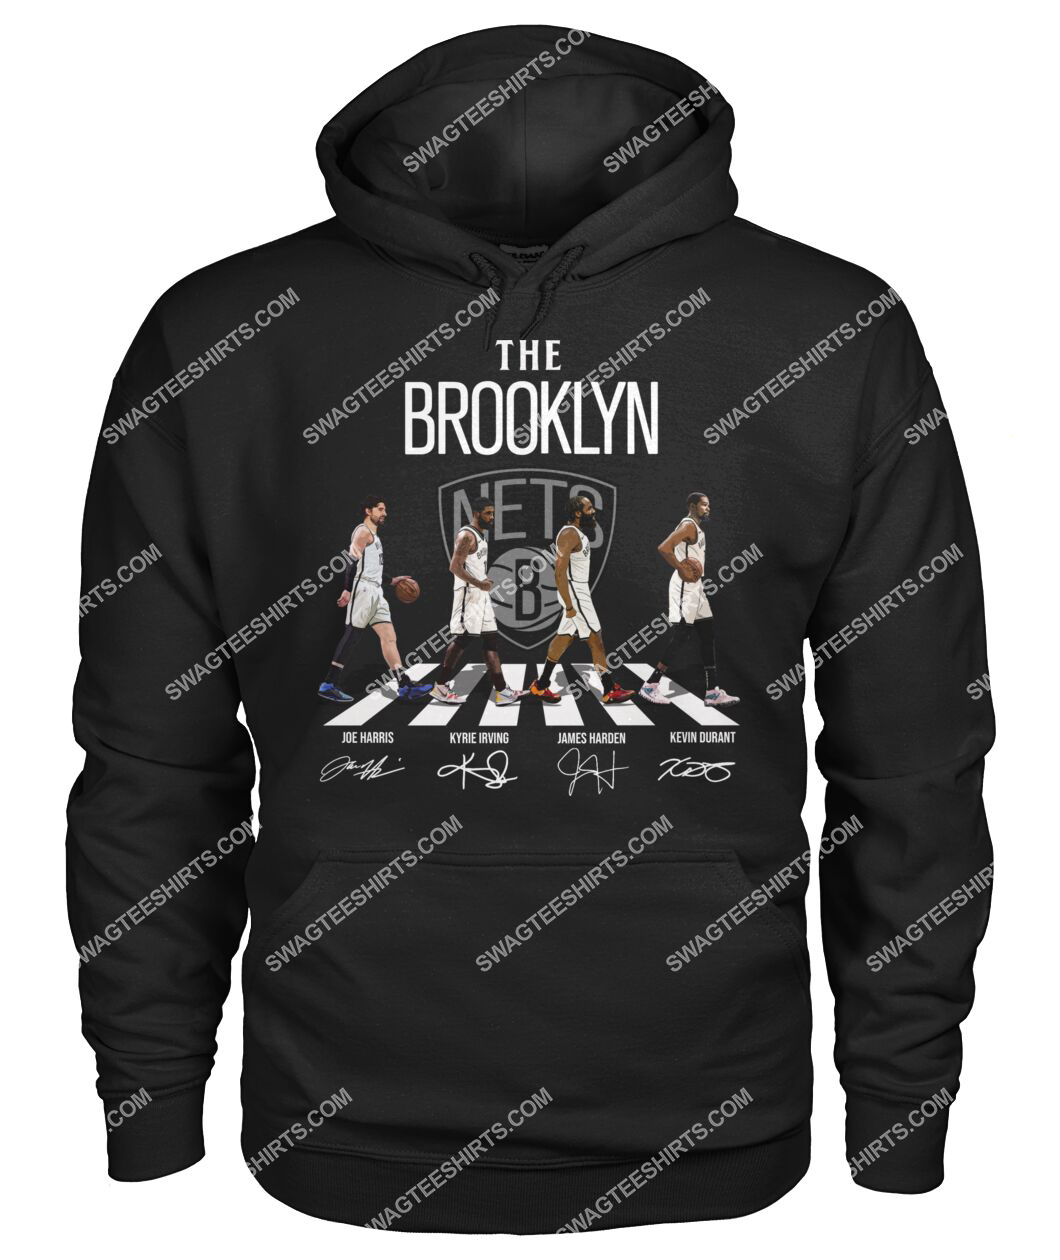 the brooklyn nets walking abbey road signatures hoodie 1